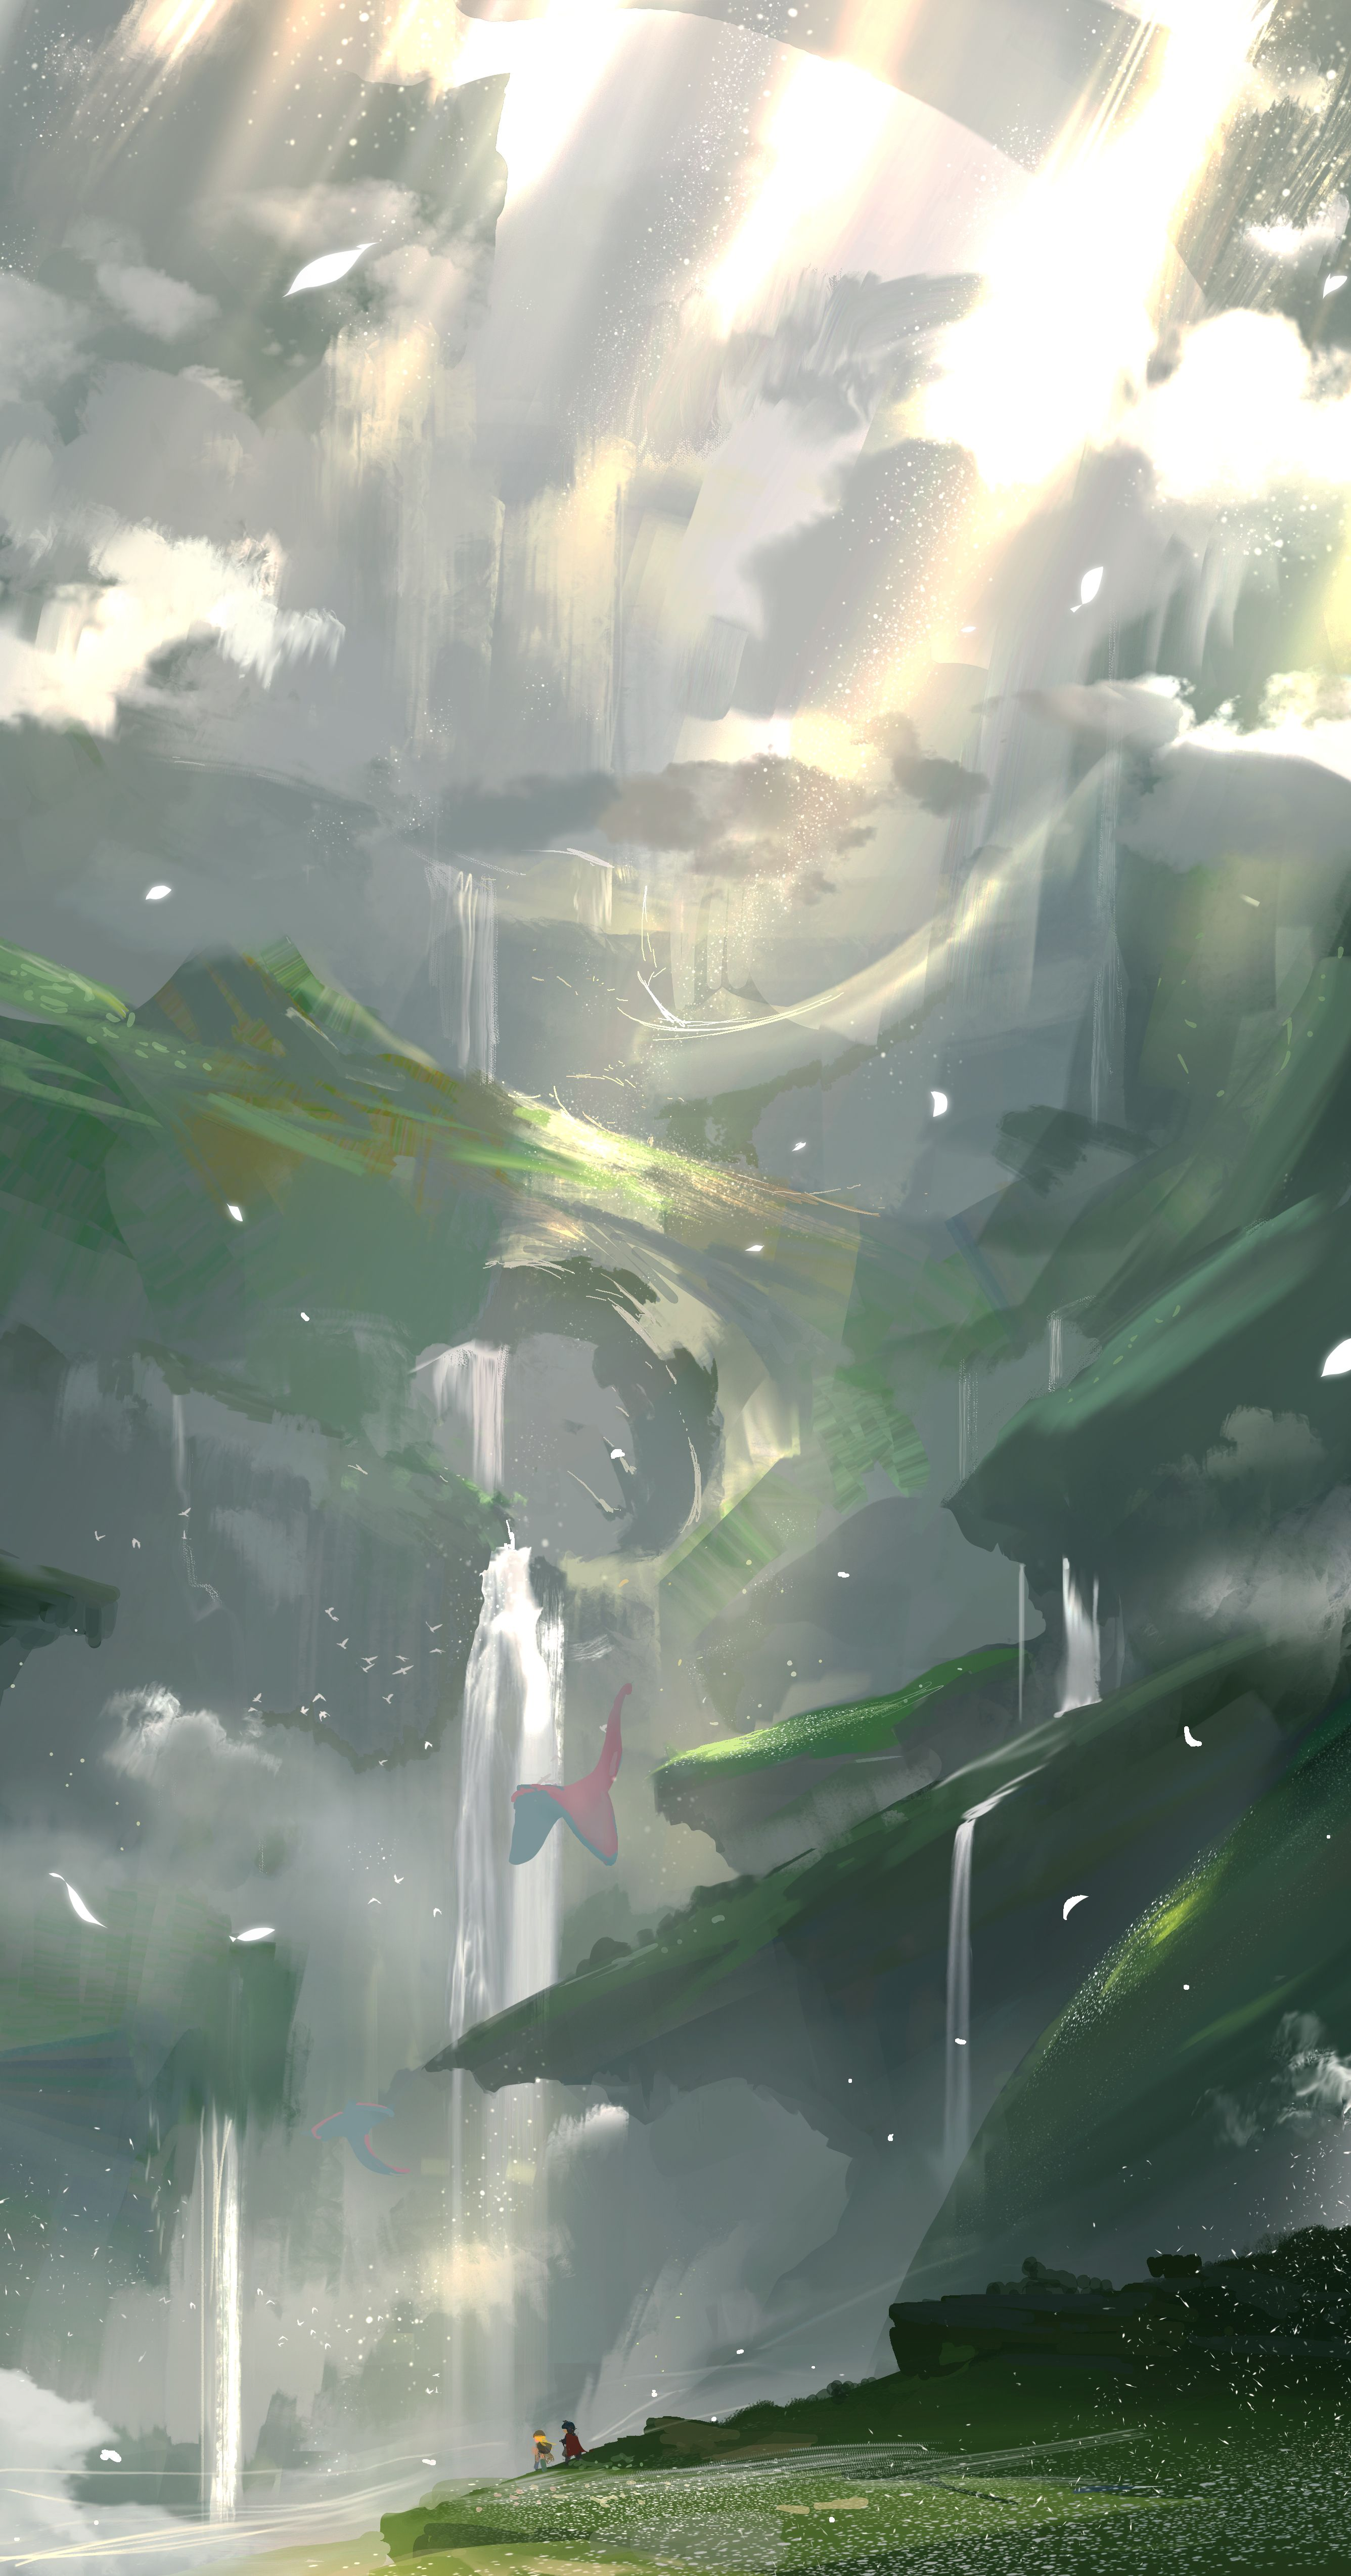 Made In Abyss Anime Scenery Abyss Anime Anime Wallpaper Iphone